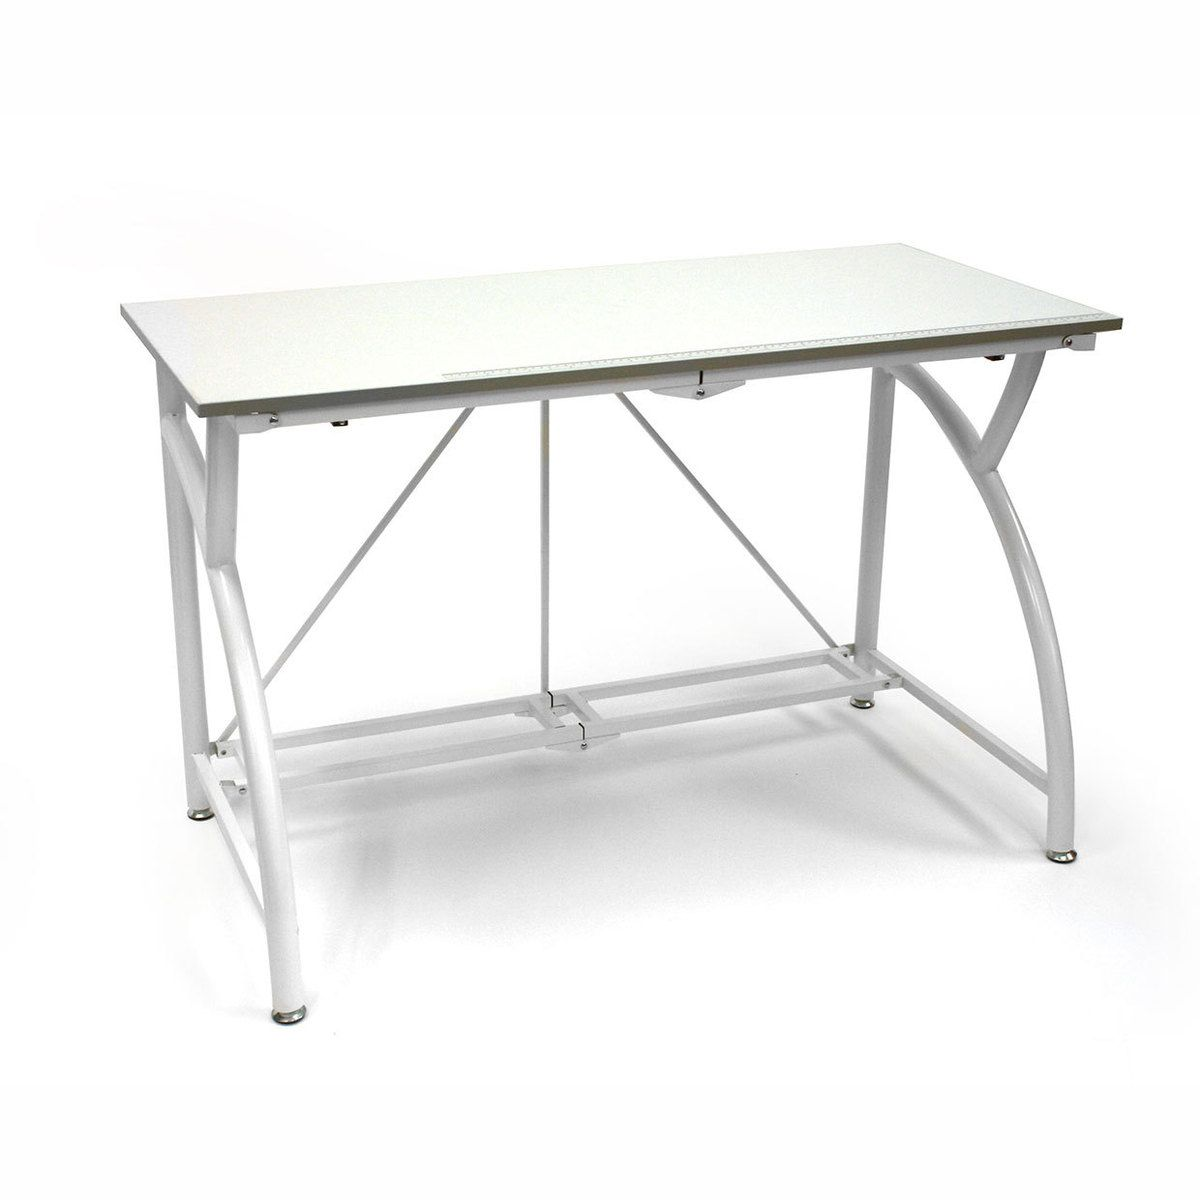 Foldable Sewing Table by Oragami $119 | Sewing Crafts ... - photo#49